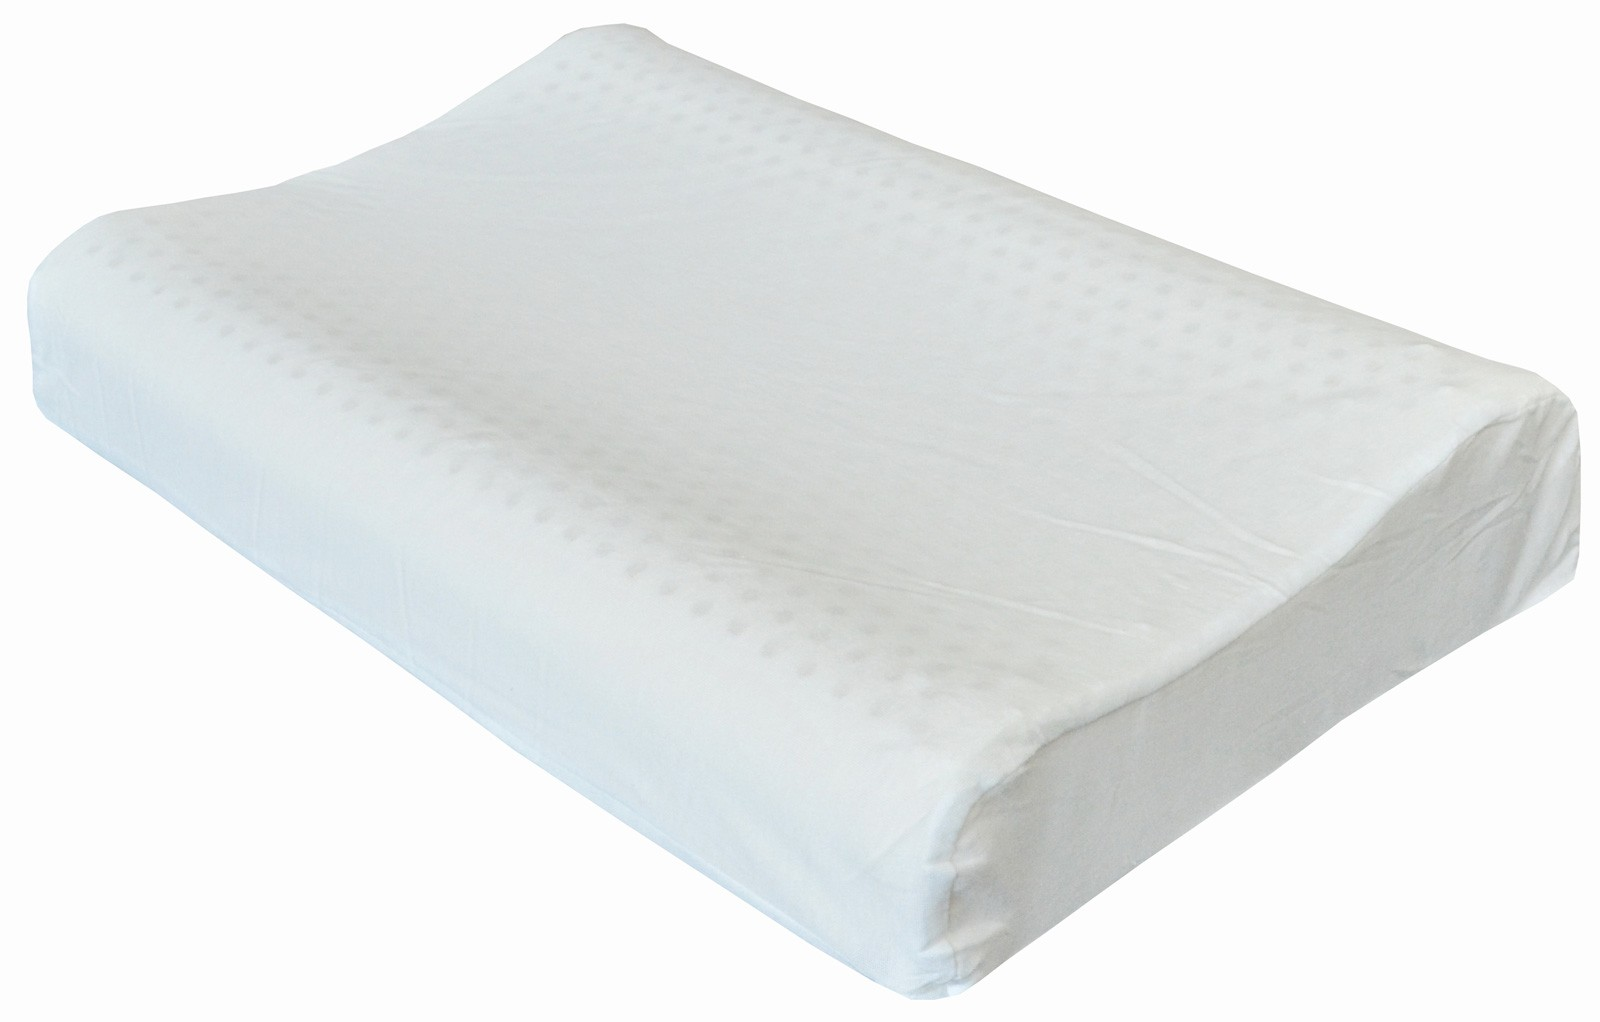 Therapeutically designed contoured latex pillows 60 x 40 10/12 cm